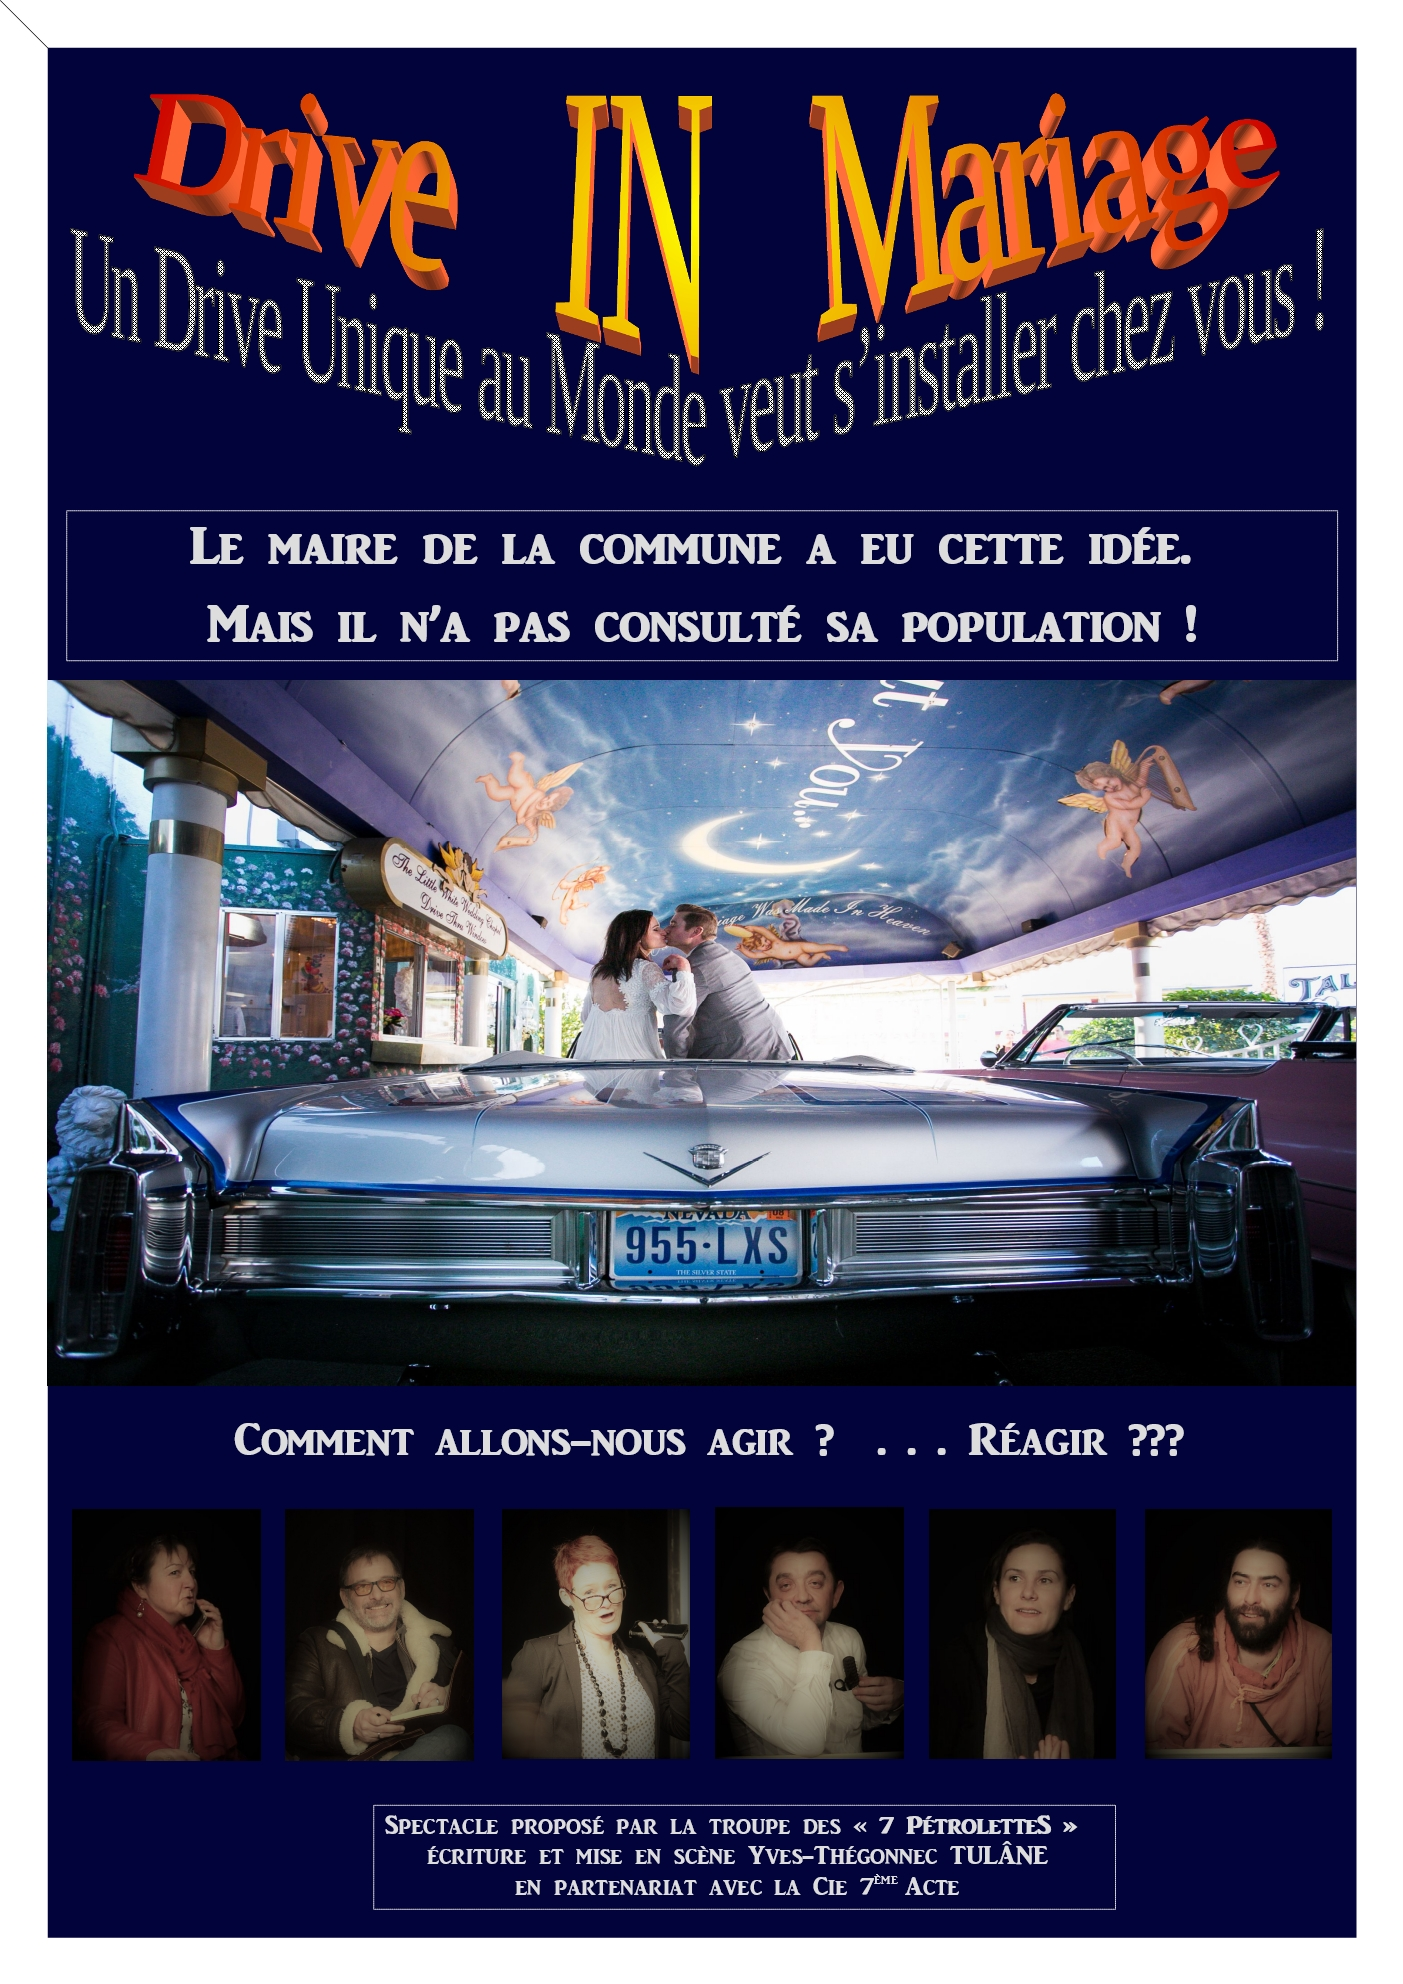 Drive IN Mariage